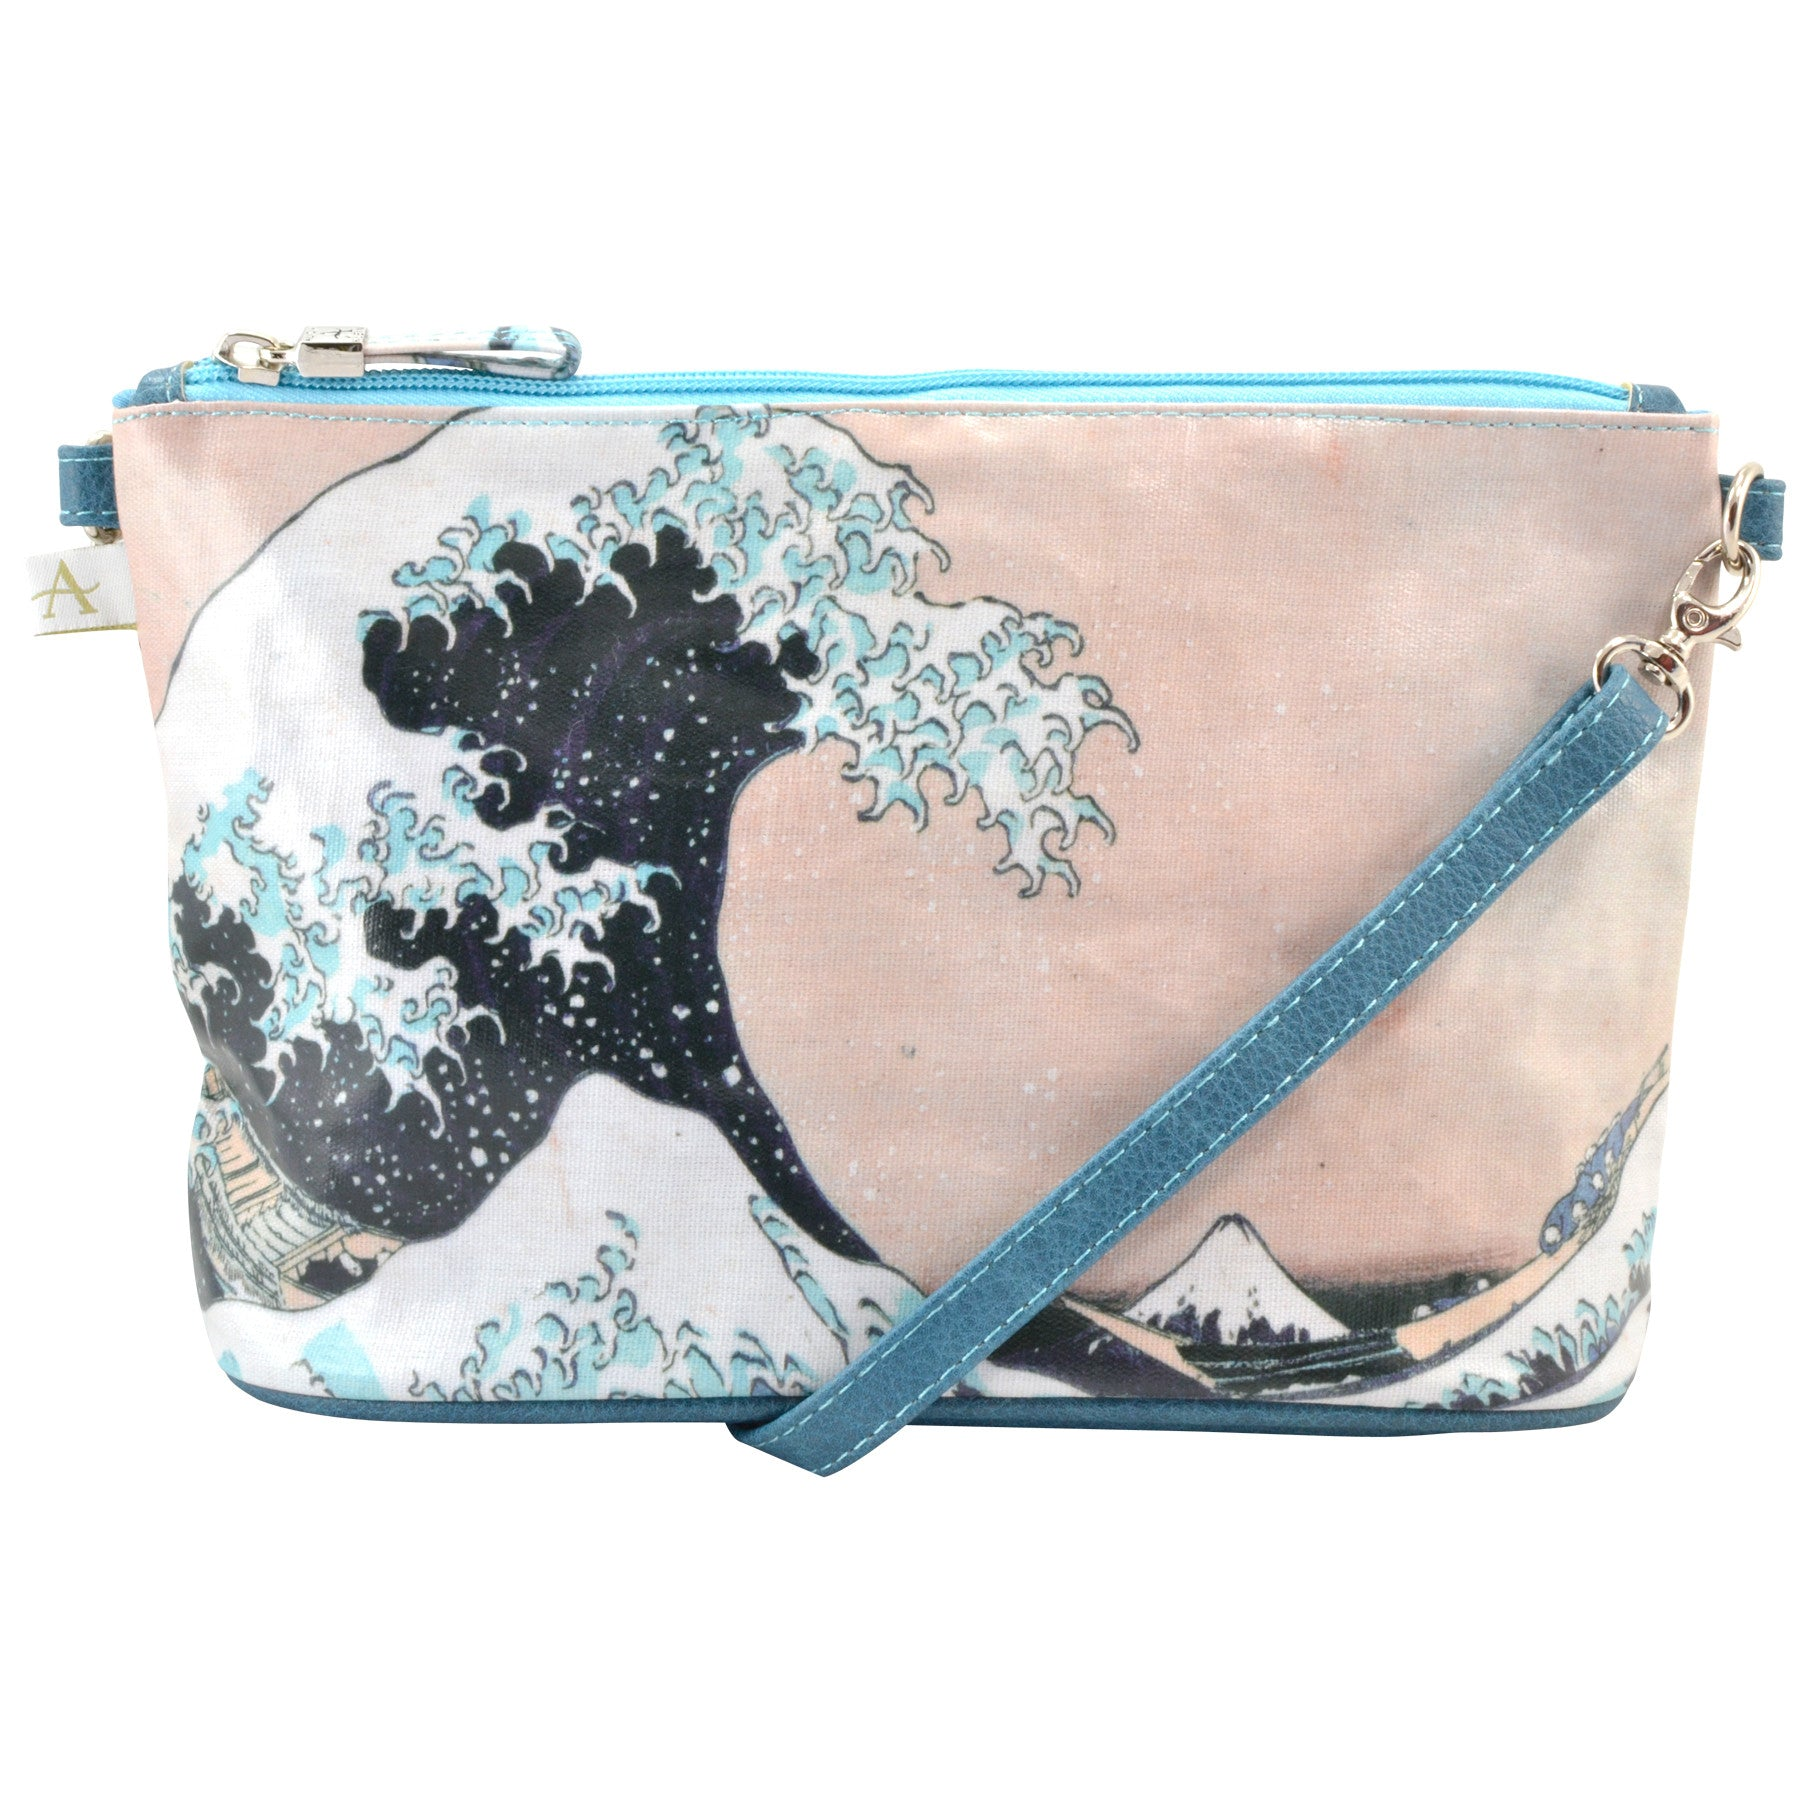 Alicia Klein small crossbody bag, Hokusai Wave